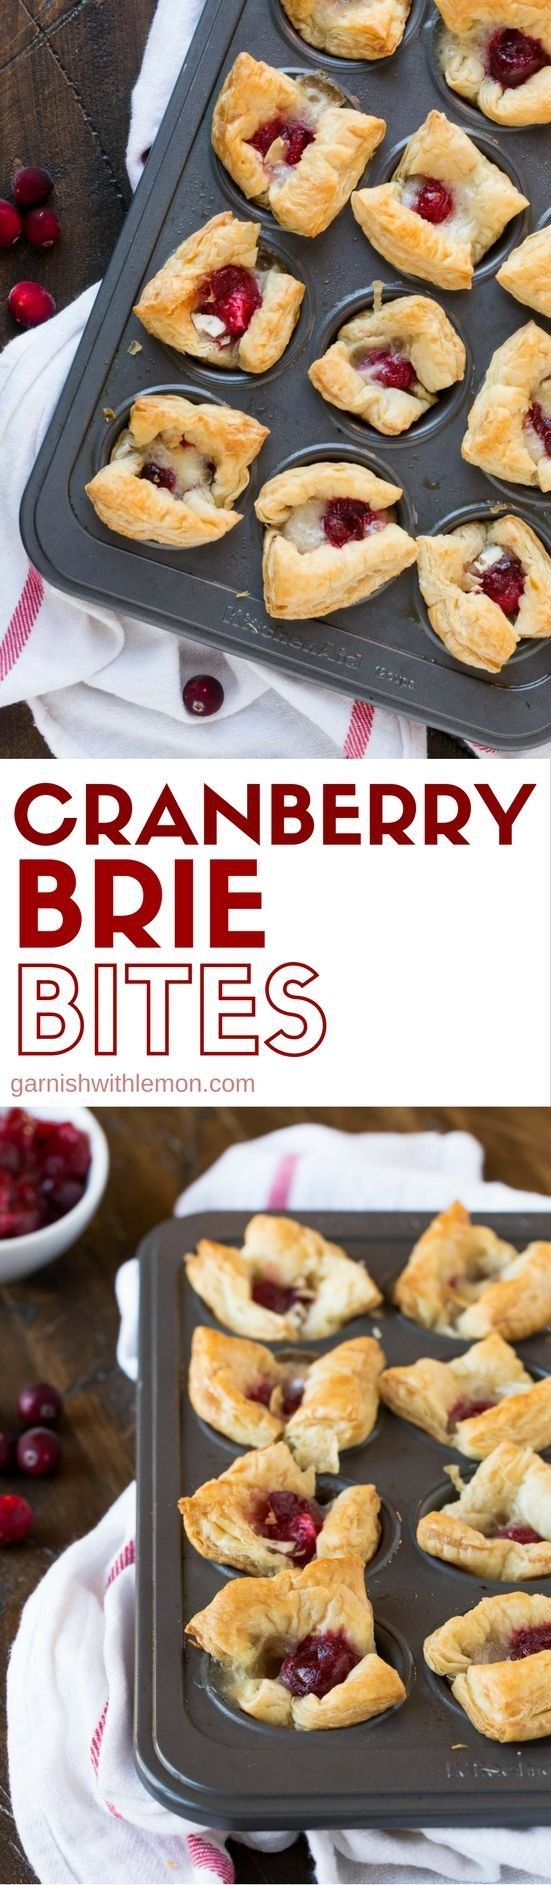 Looking for an easy, last-minute appetizer? These Cranberry Brie Bites are a great way to transform extra cranberry sauce and make a delicious party snack!